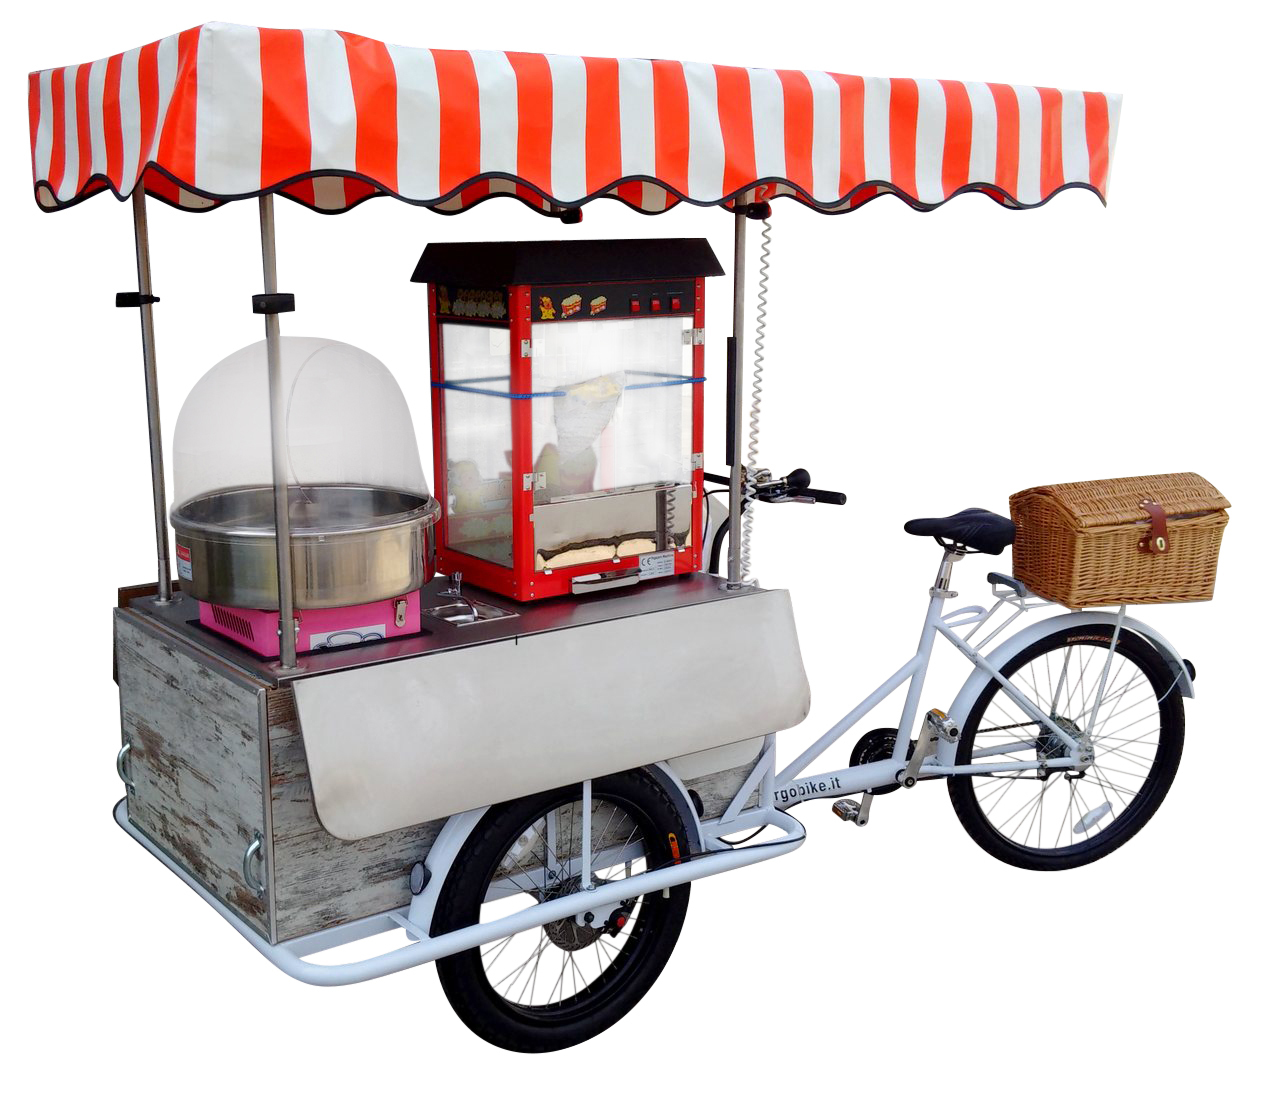 Carretto_Zucchero_Filato_e_Pop_Corn_Cargo_Bike_Triciclo_1